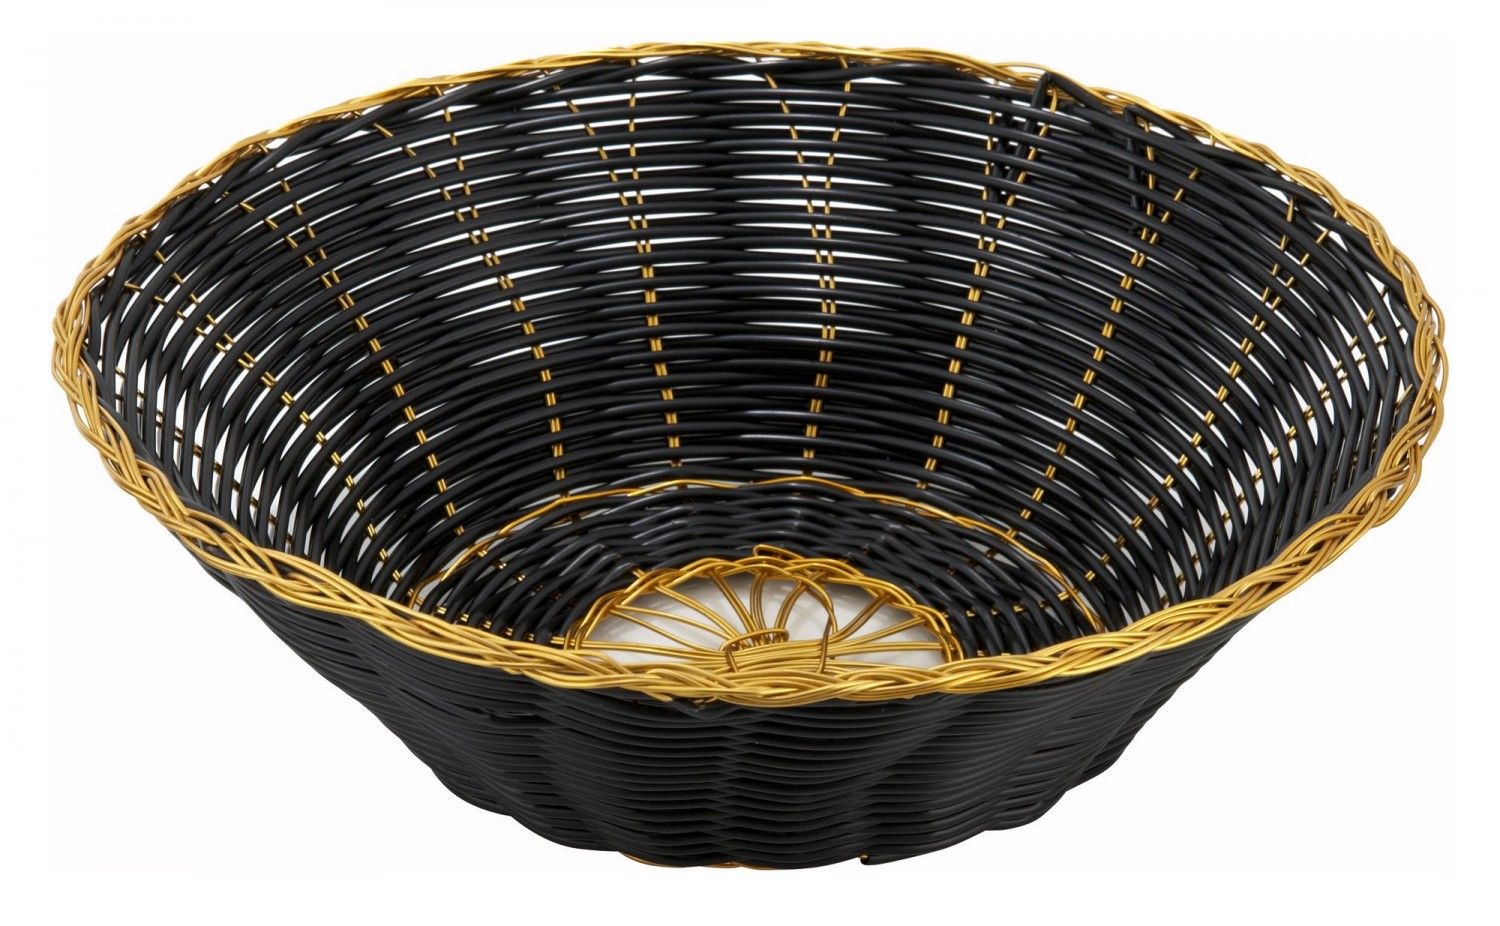 Winco PWBK-8R Round Woven Basket, Black with Gold Trim - 1 doz